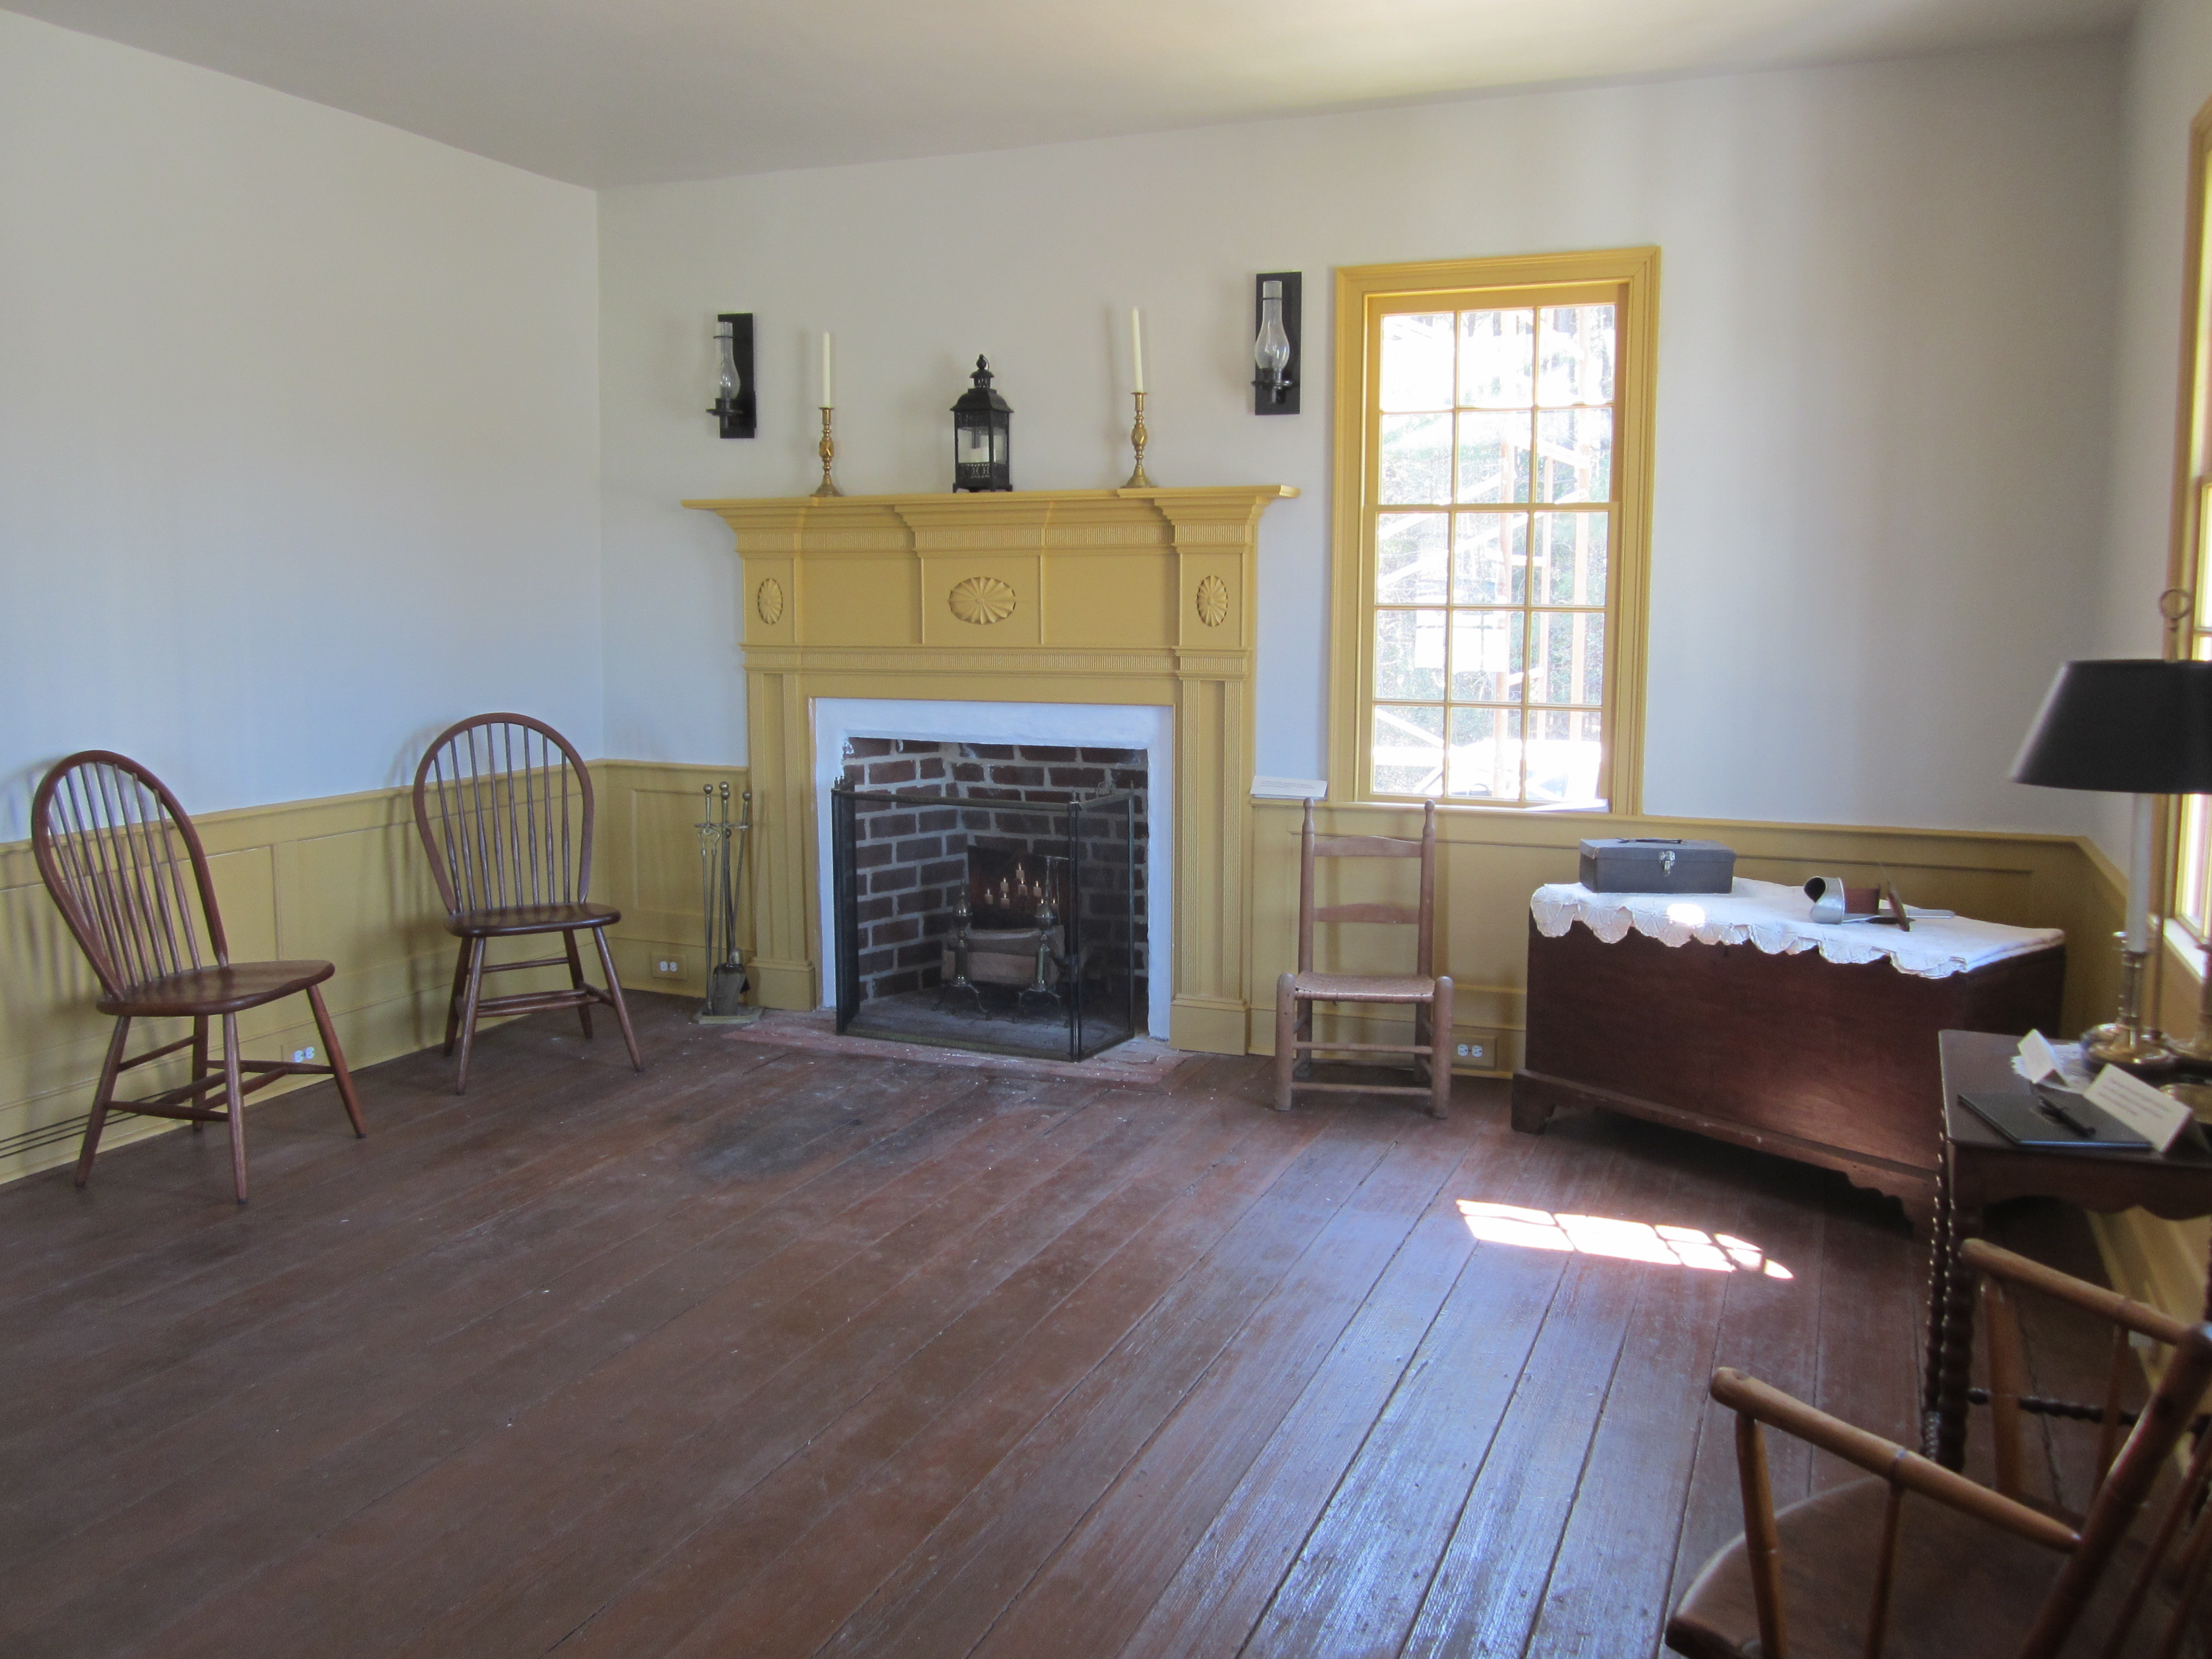 The original parlor of the house has been restored with museum era furnishings. The mantle, the windows and the wainscoting were all constructed by students to replace the missing items.